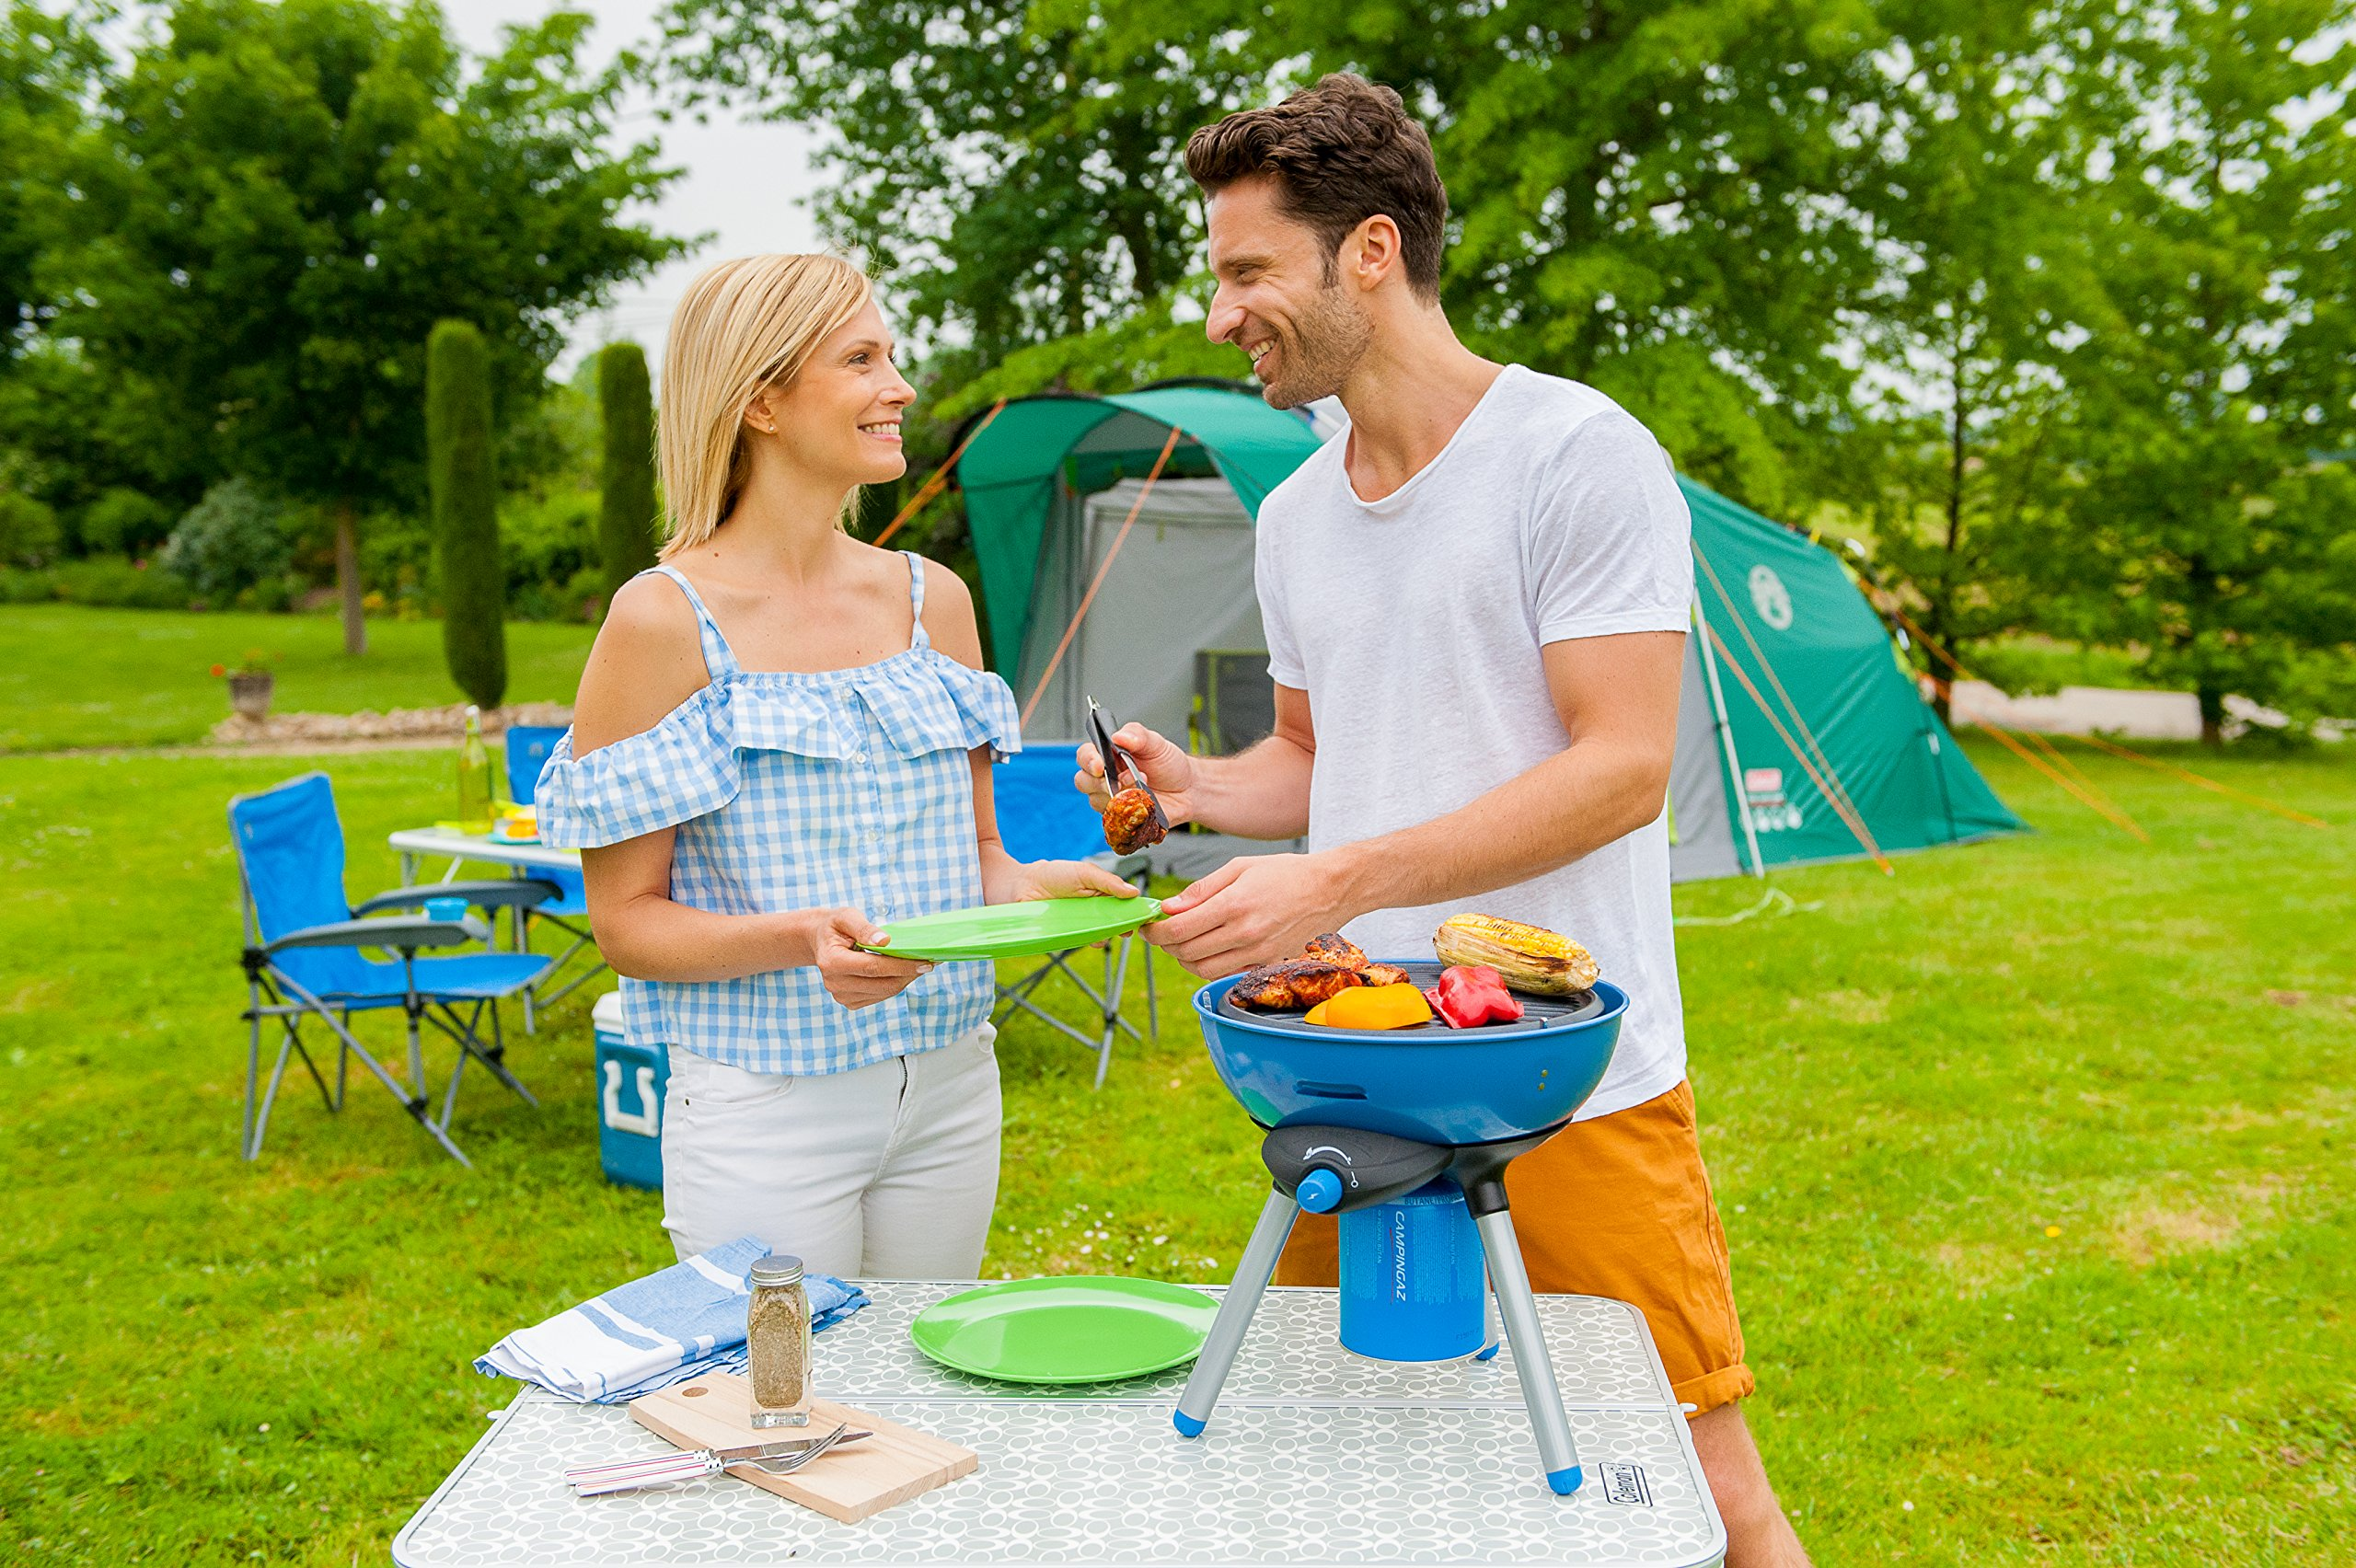 Campingaz Party Grill 200 Camping Stove, All in One portable Camping BBQ, Outdoor Grill & Stove, Small Gas Barbecue 2.000 Watt, Runs on CV 470 Plus Gas Cartridge 15